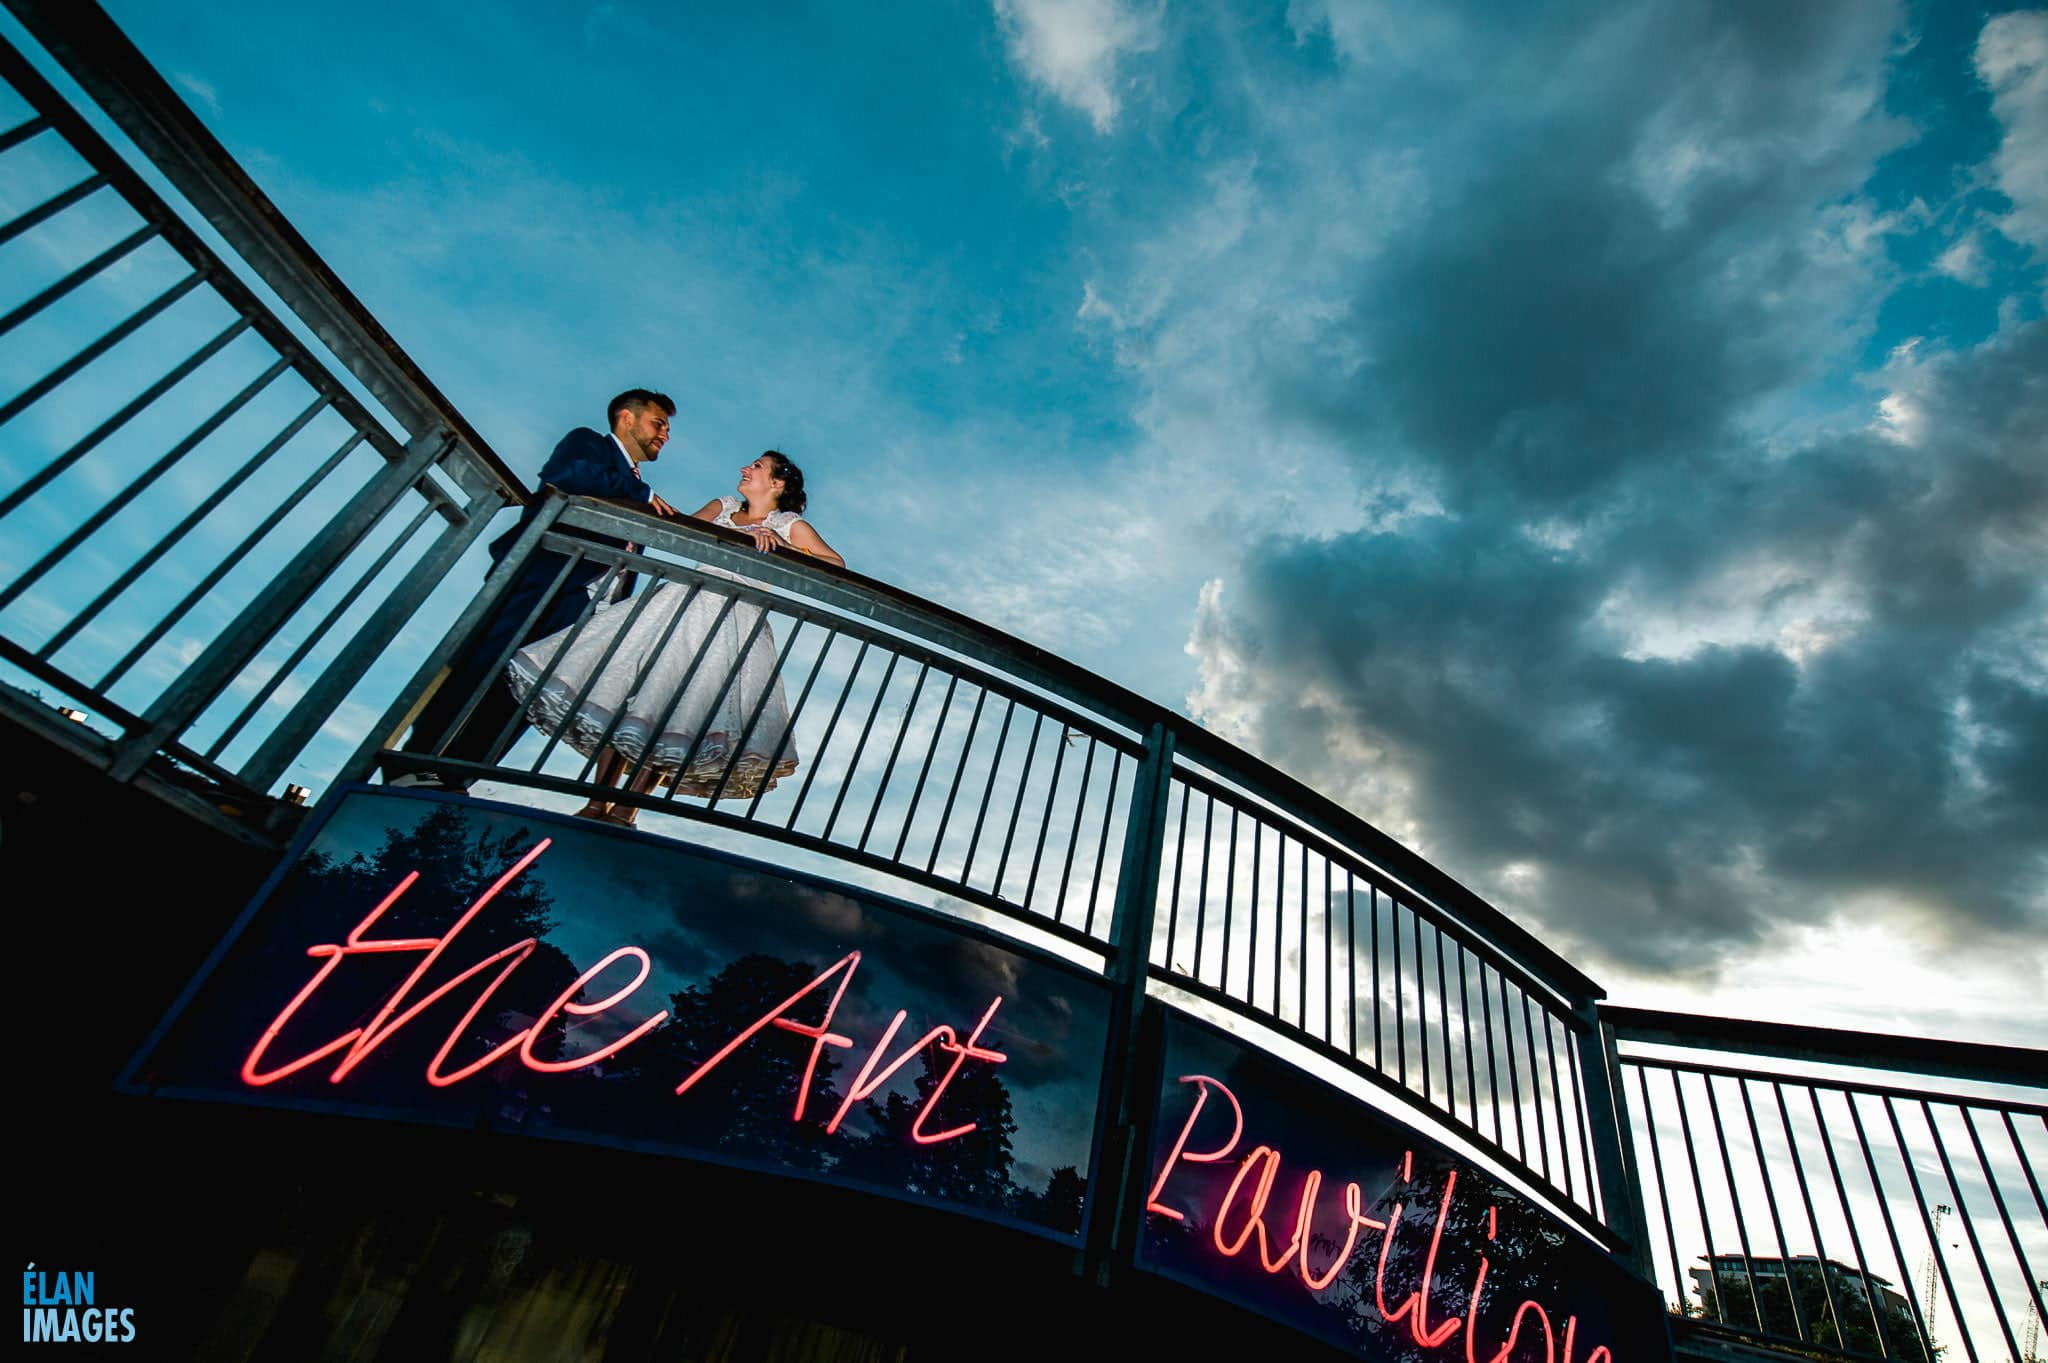 Mile End Art Pavilion Wedding